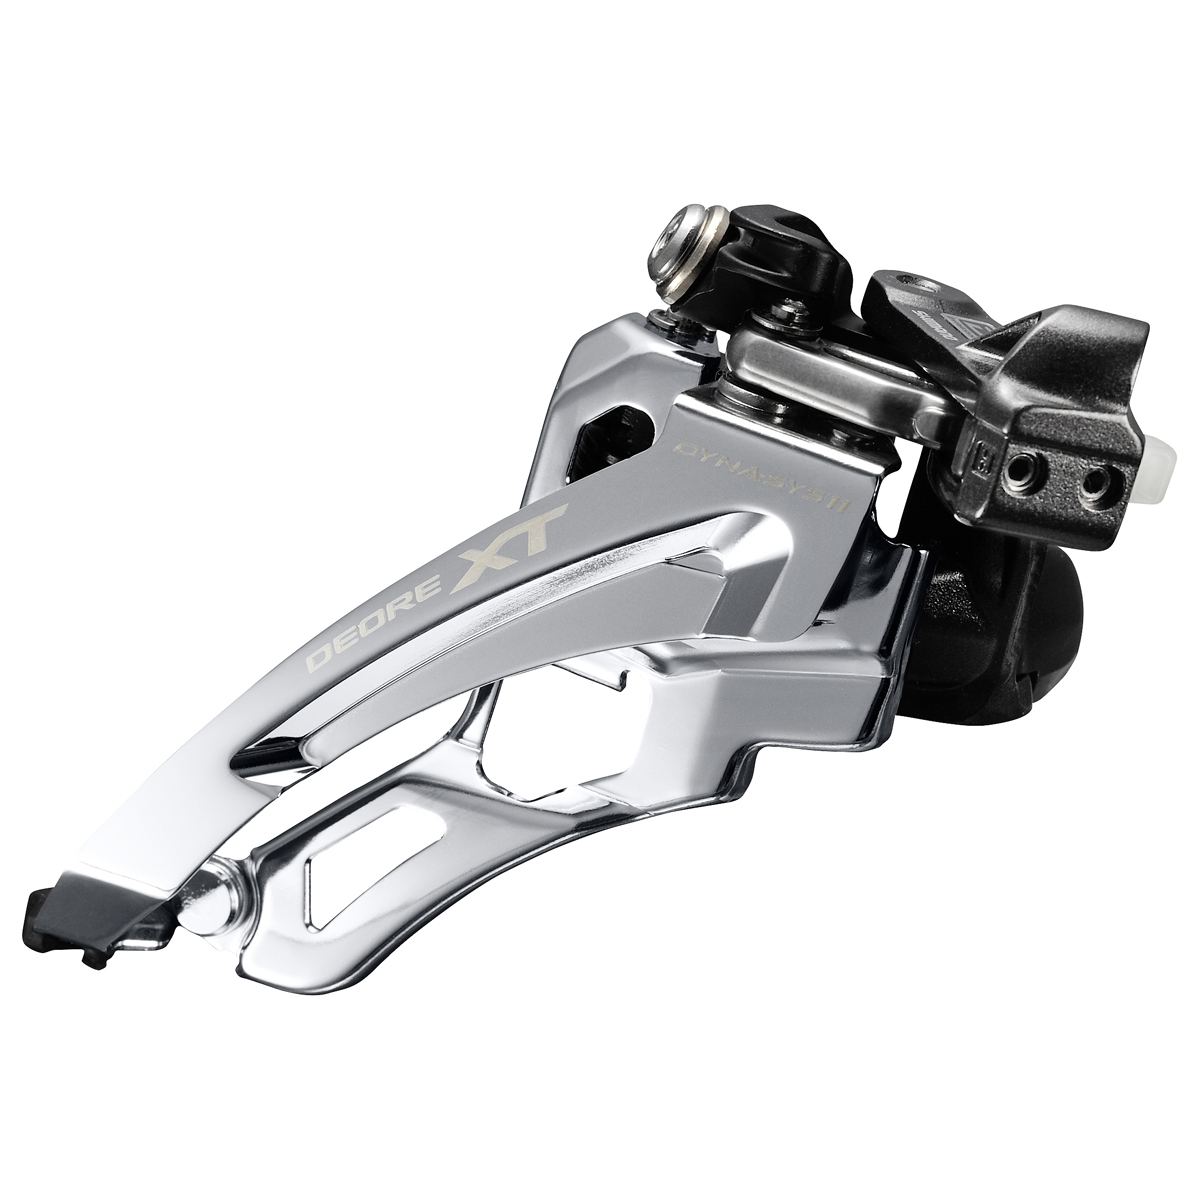 Dérailleur avant Shimano XT M8000 3x11 Side-Swing Collier Bas 34.9-31.8-28.6 mm